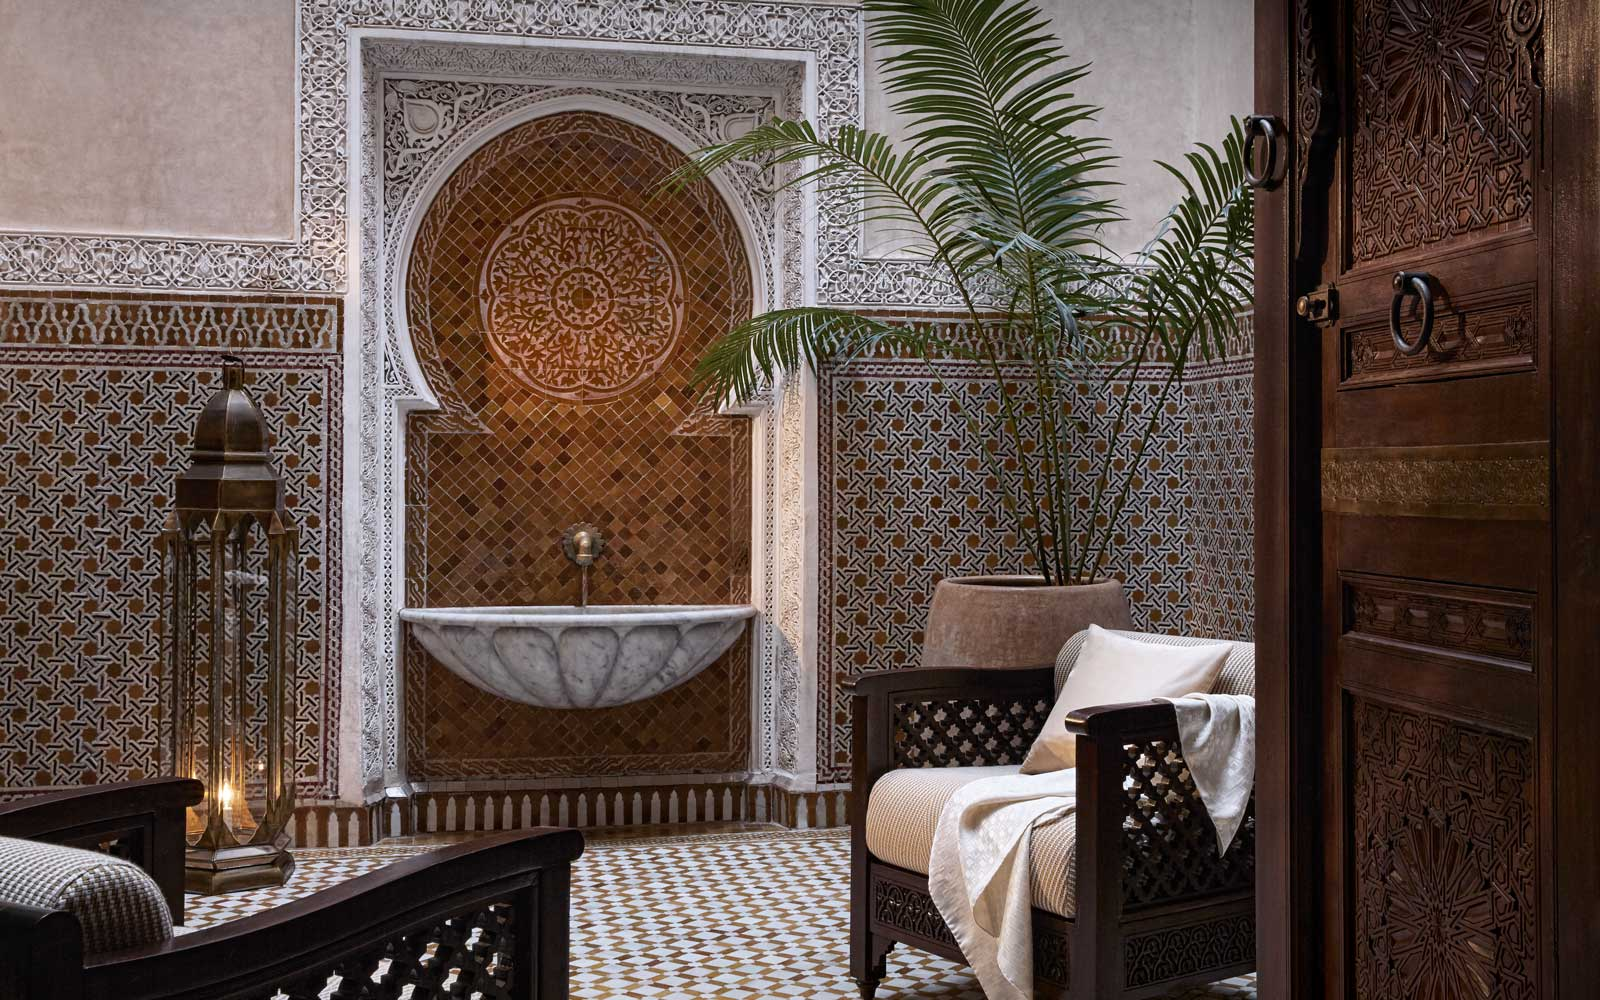 Ornate tilework at the Royal Mansour luxury hotel in Morocco